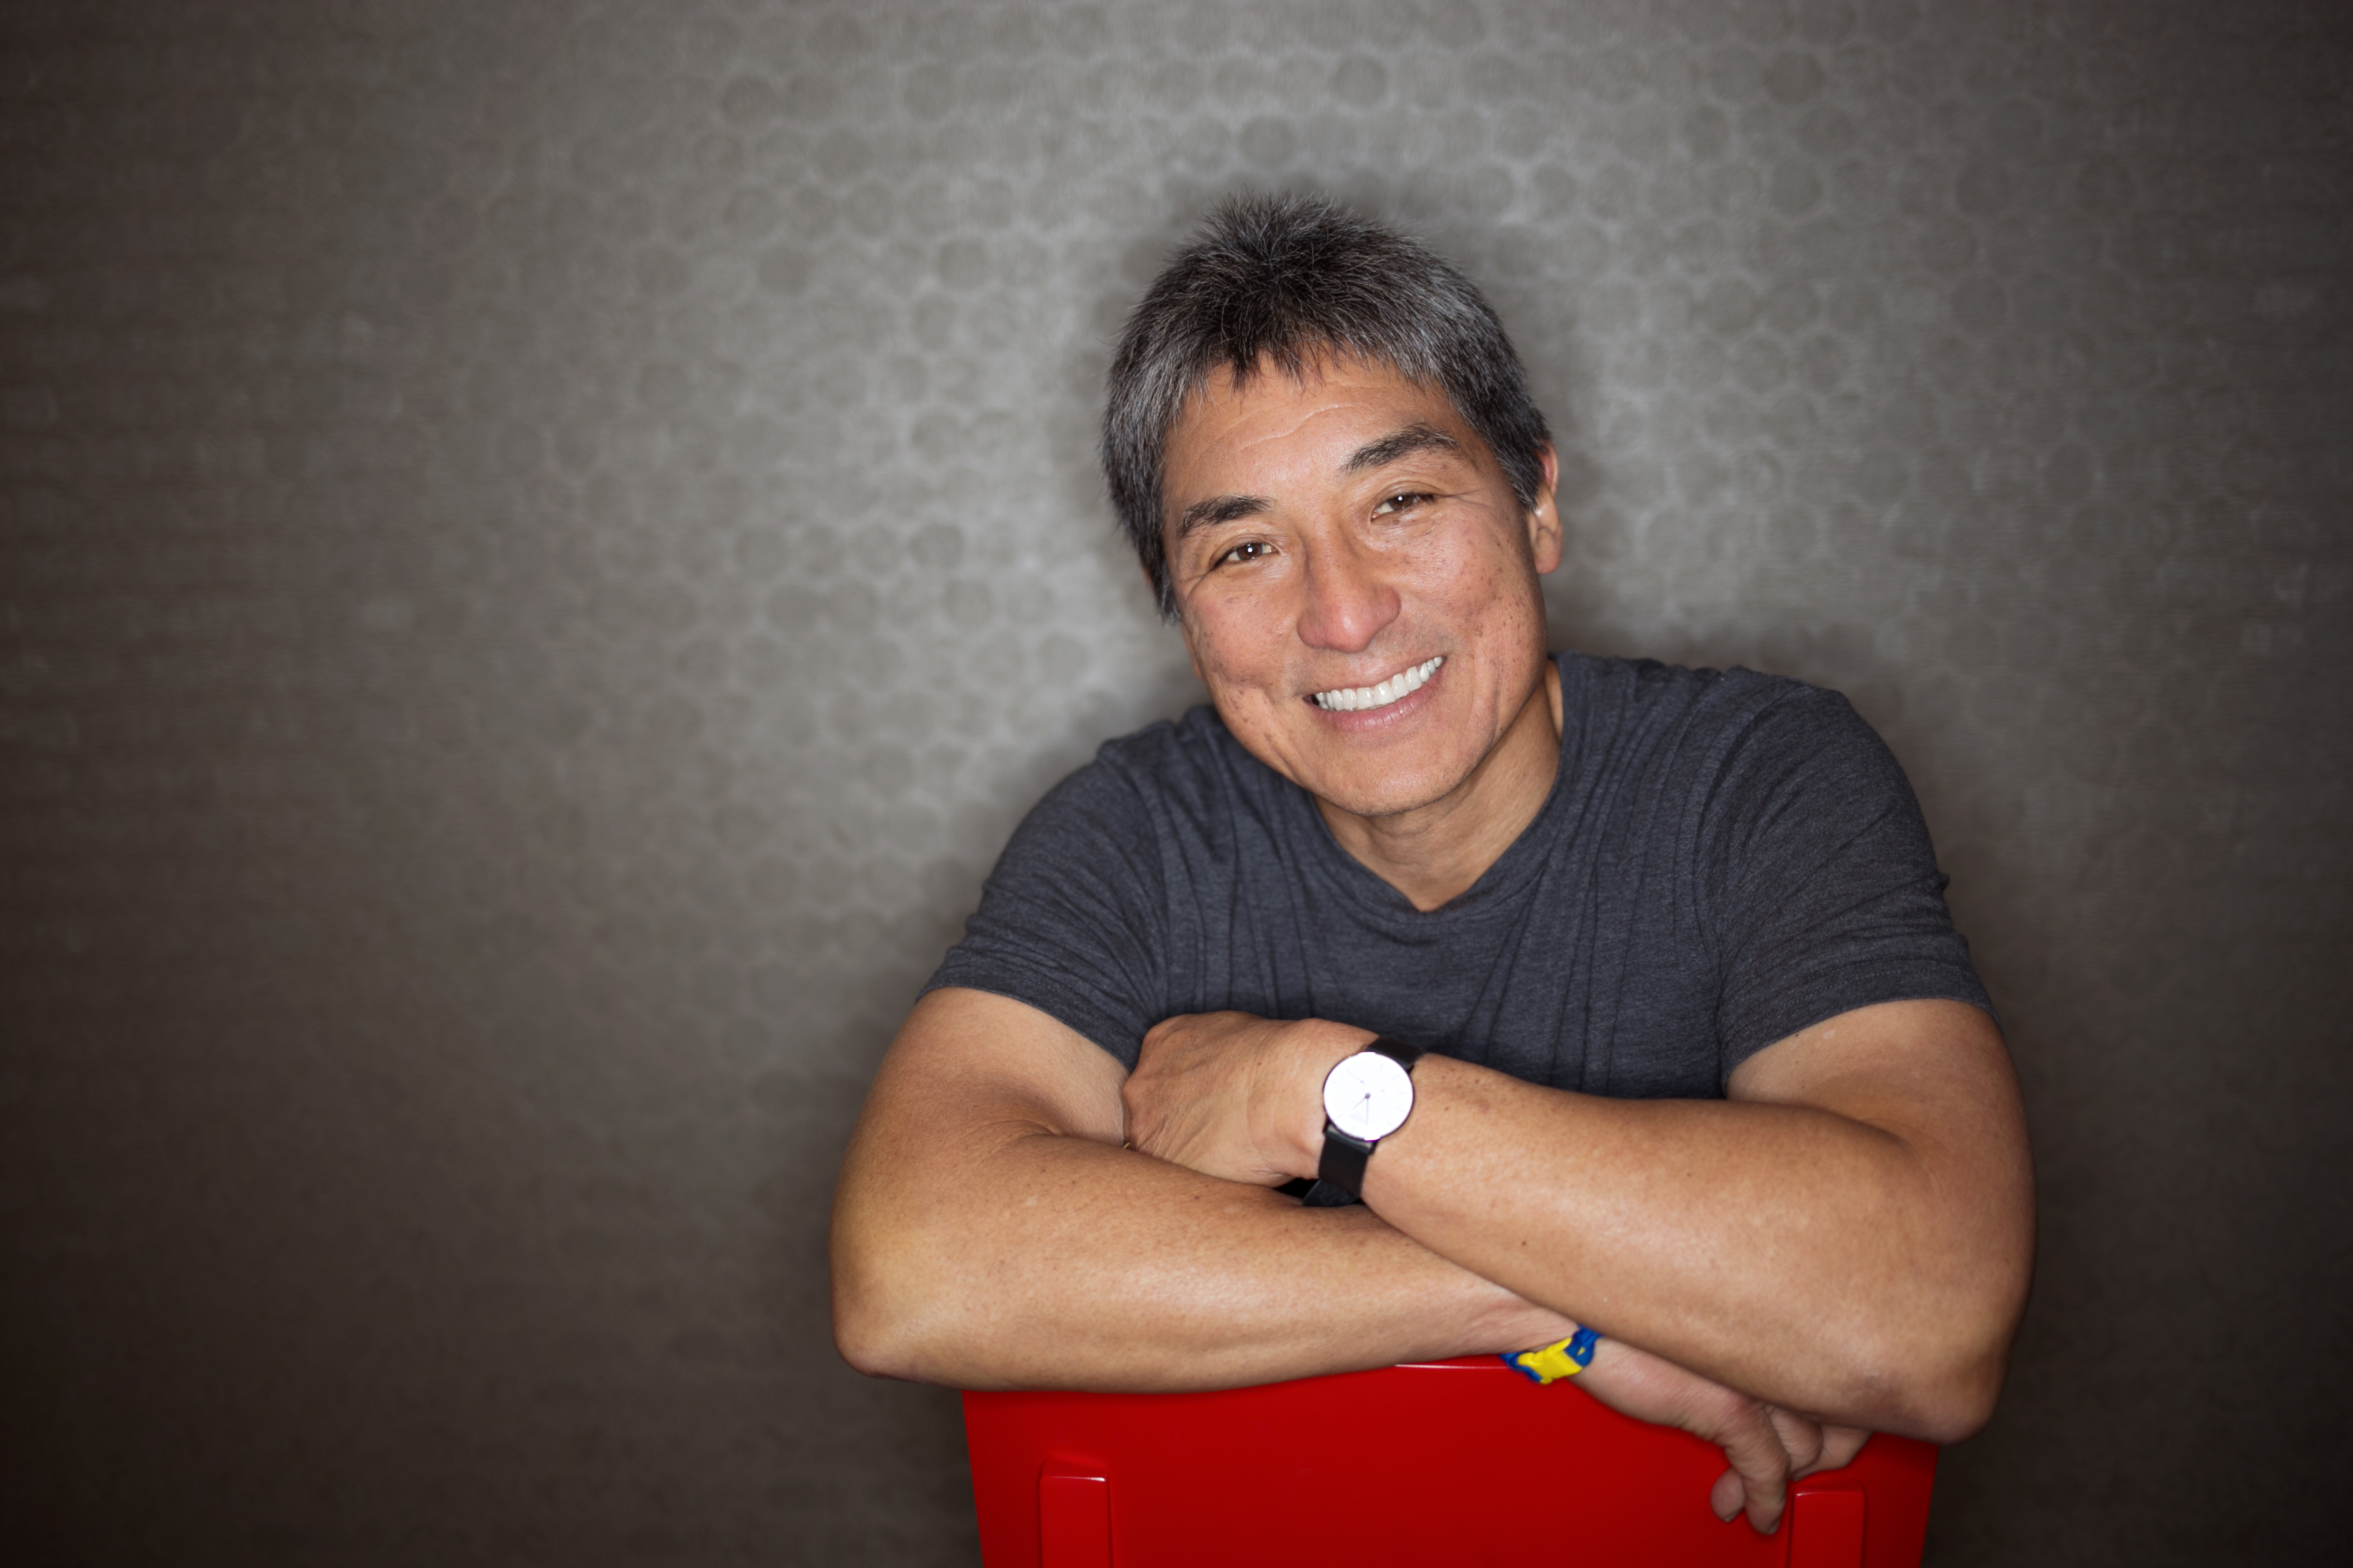 Guy Kawasaki - About